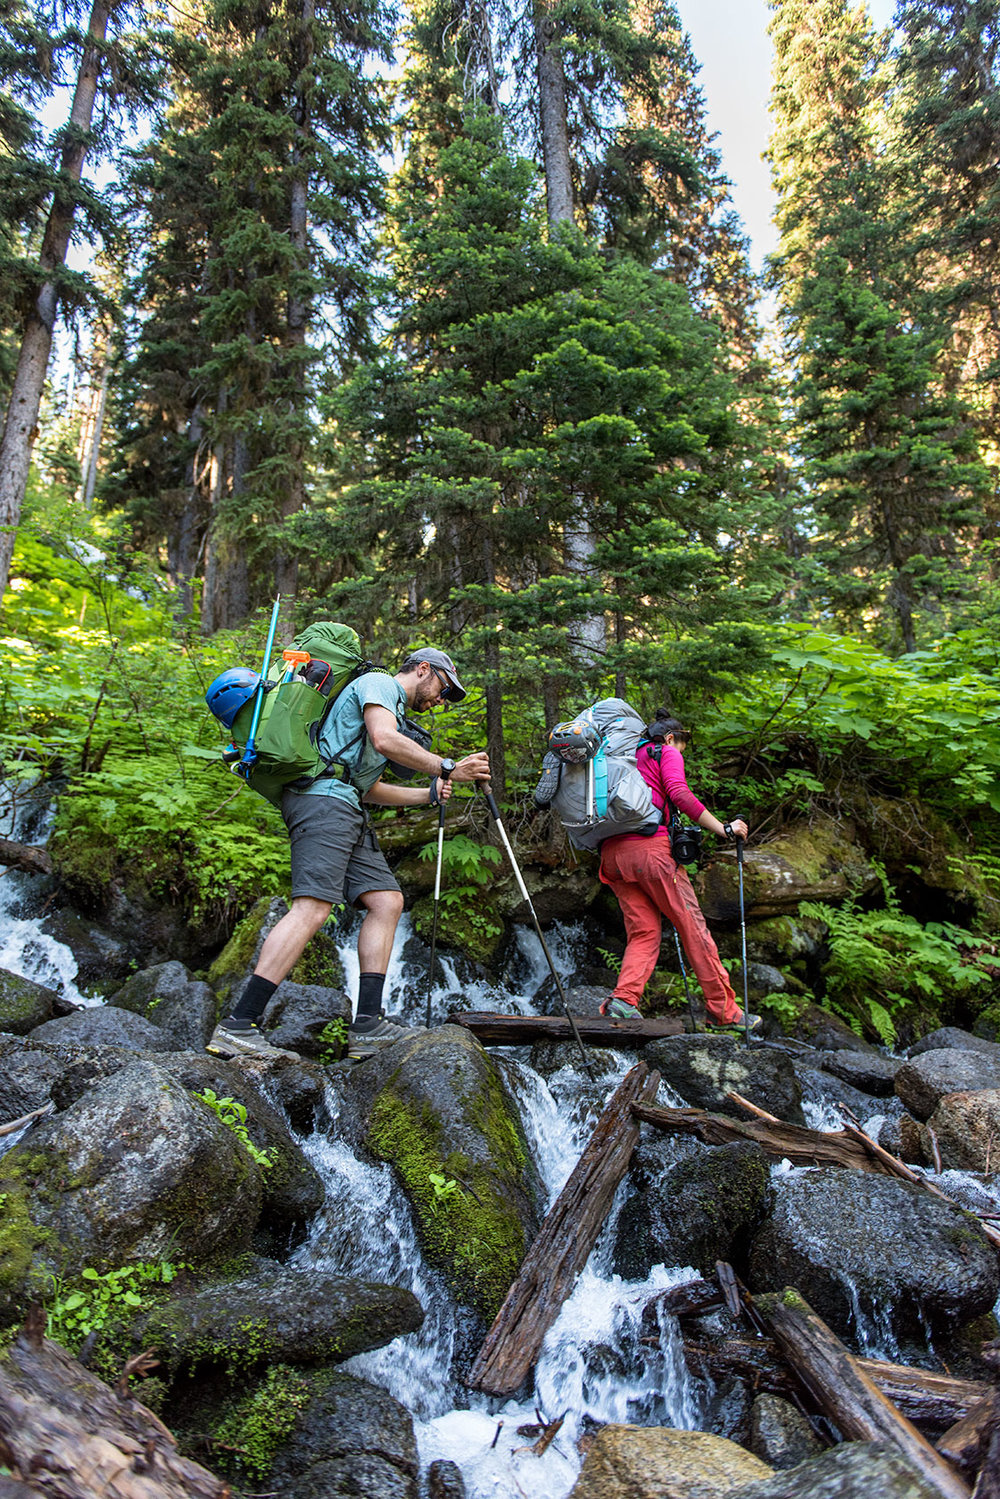 austin-trigg-osprey-hiking-backpacks-hike-camp-washington-adventure-morning-sunrise-lifestyle-outdoor-enchantments-stream-crossing-forest.jpg